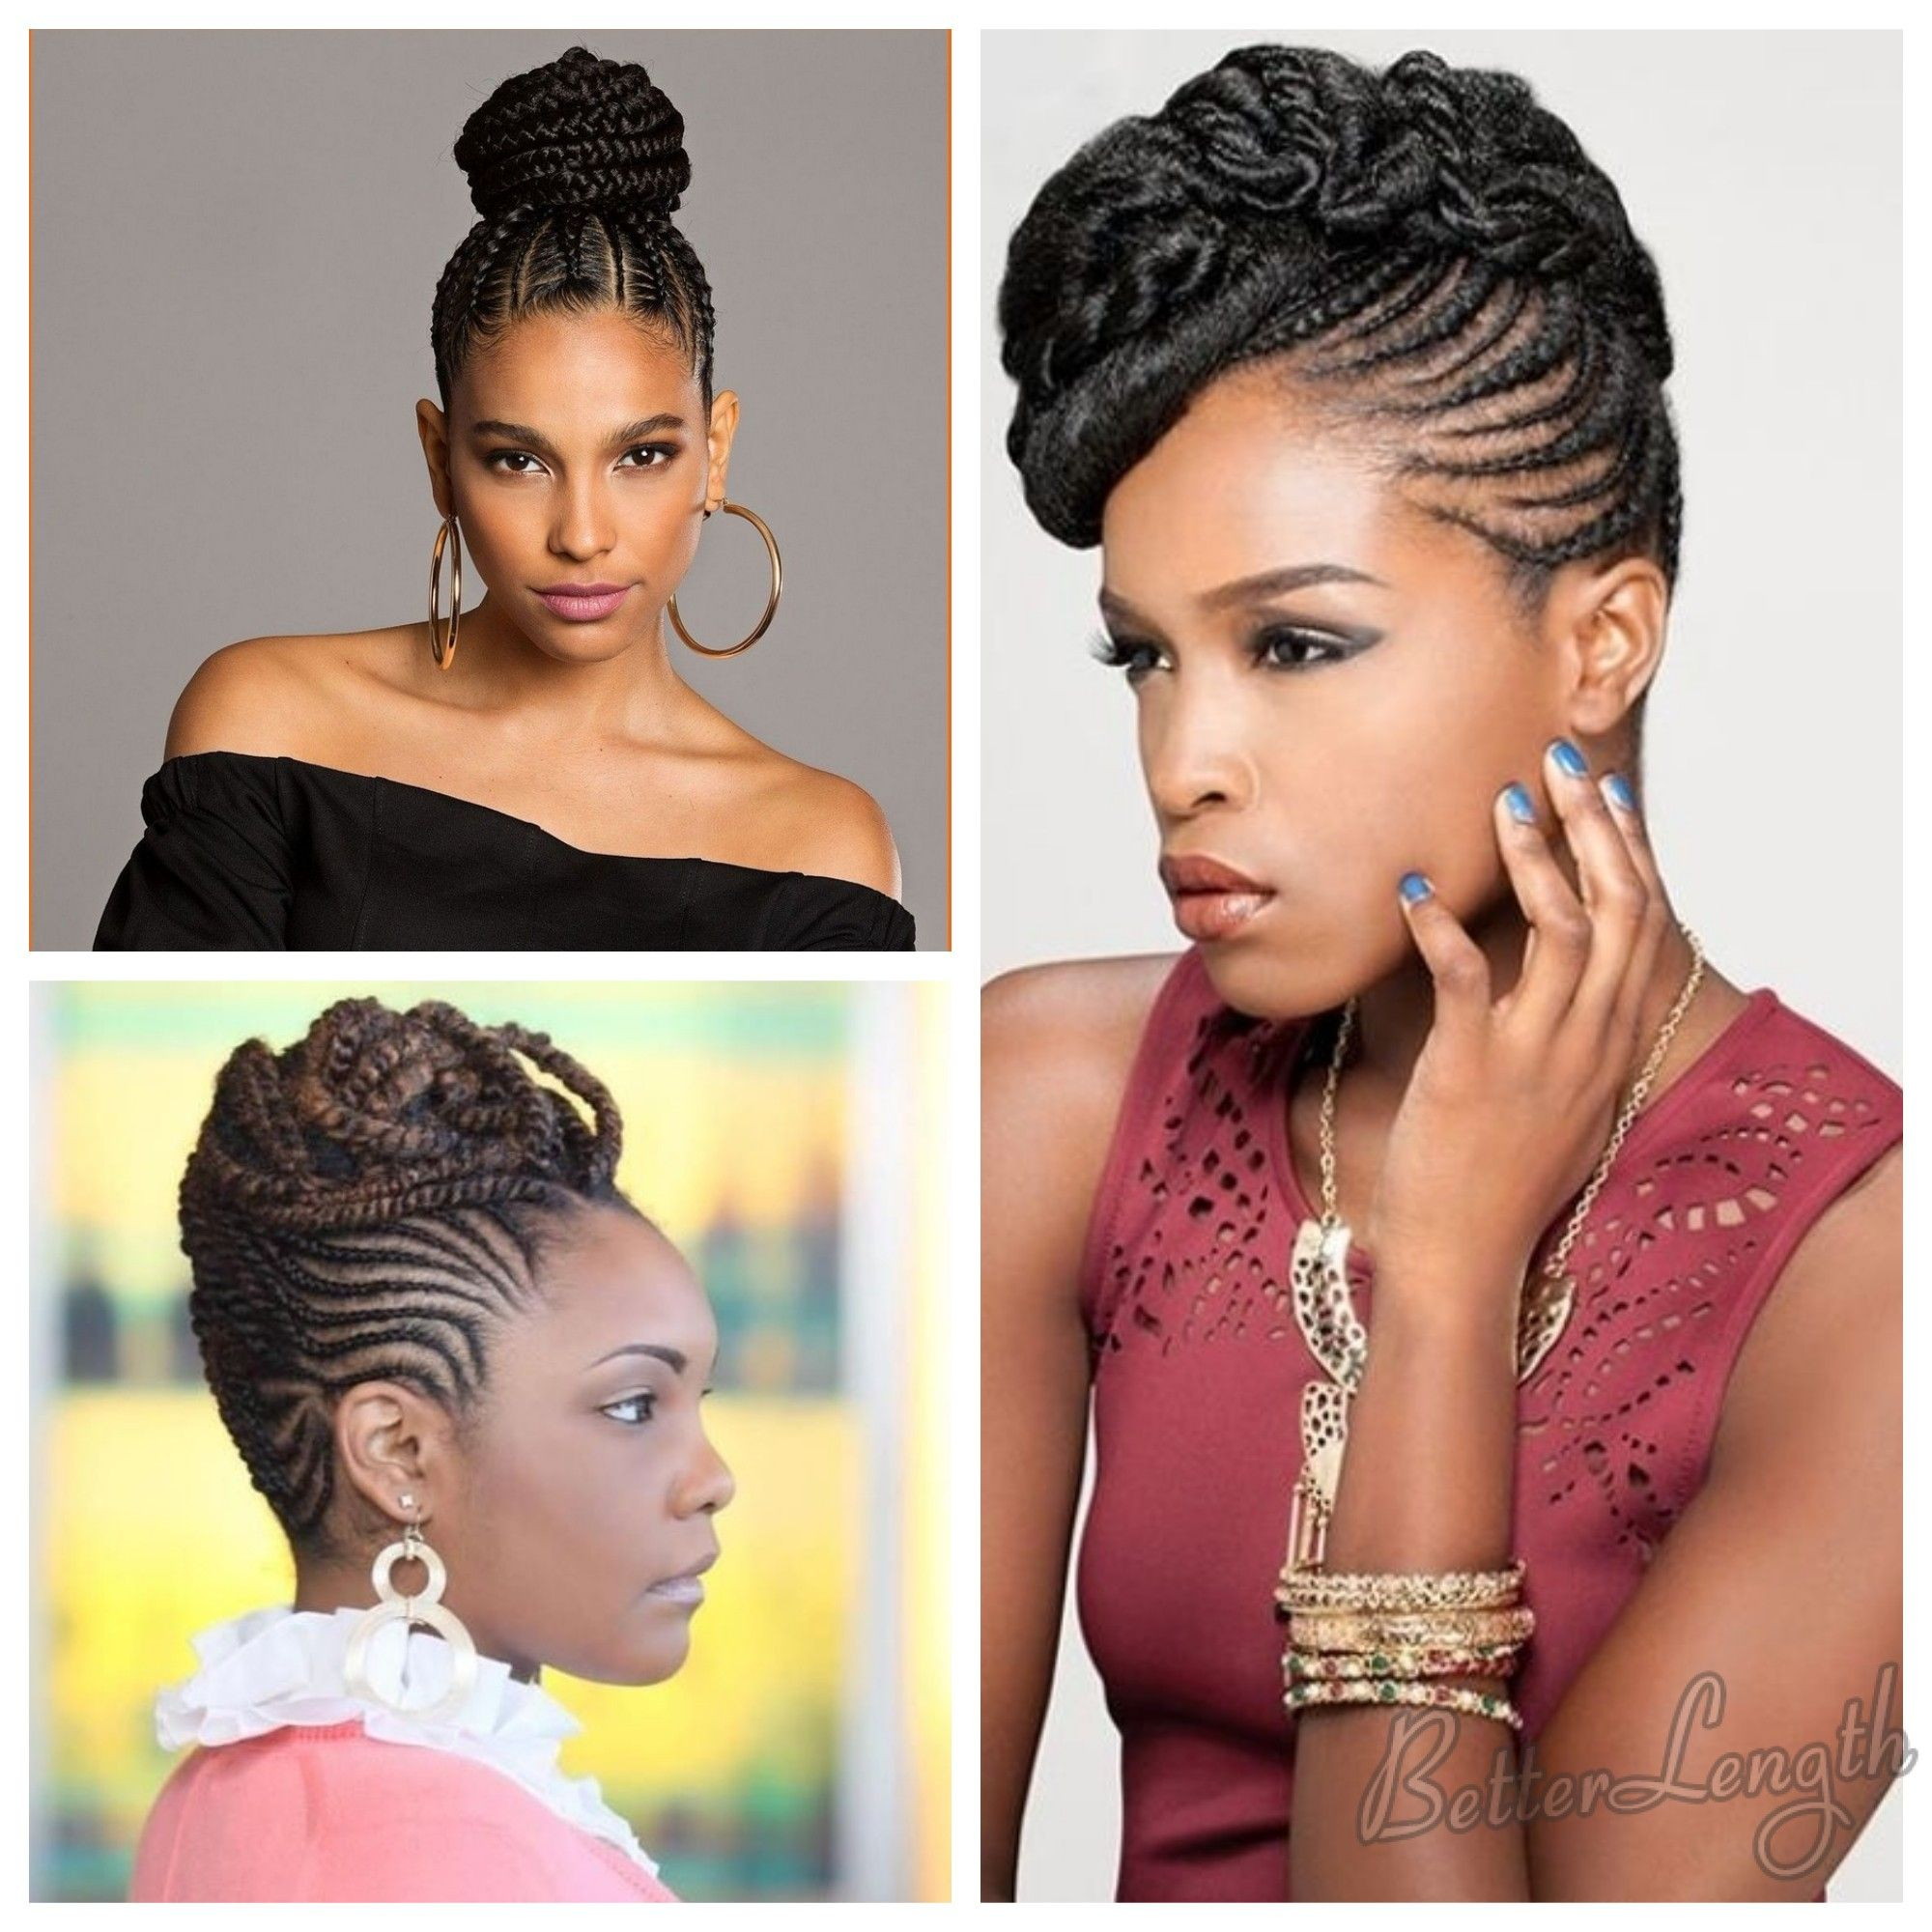 best 7 summer hairstyles for black women 2018 | hair styles